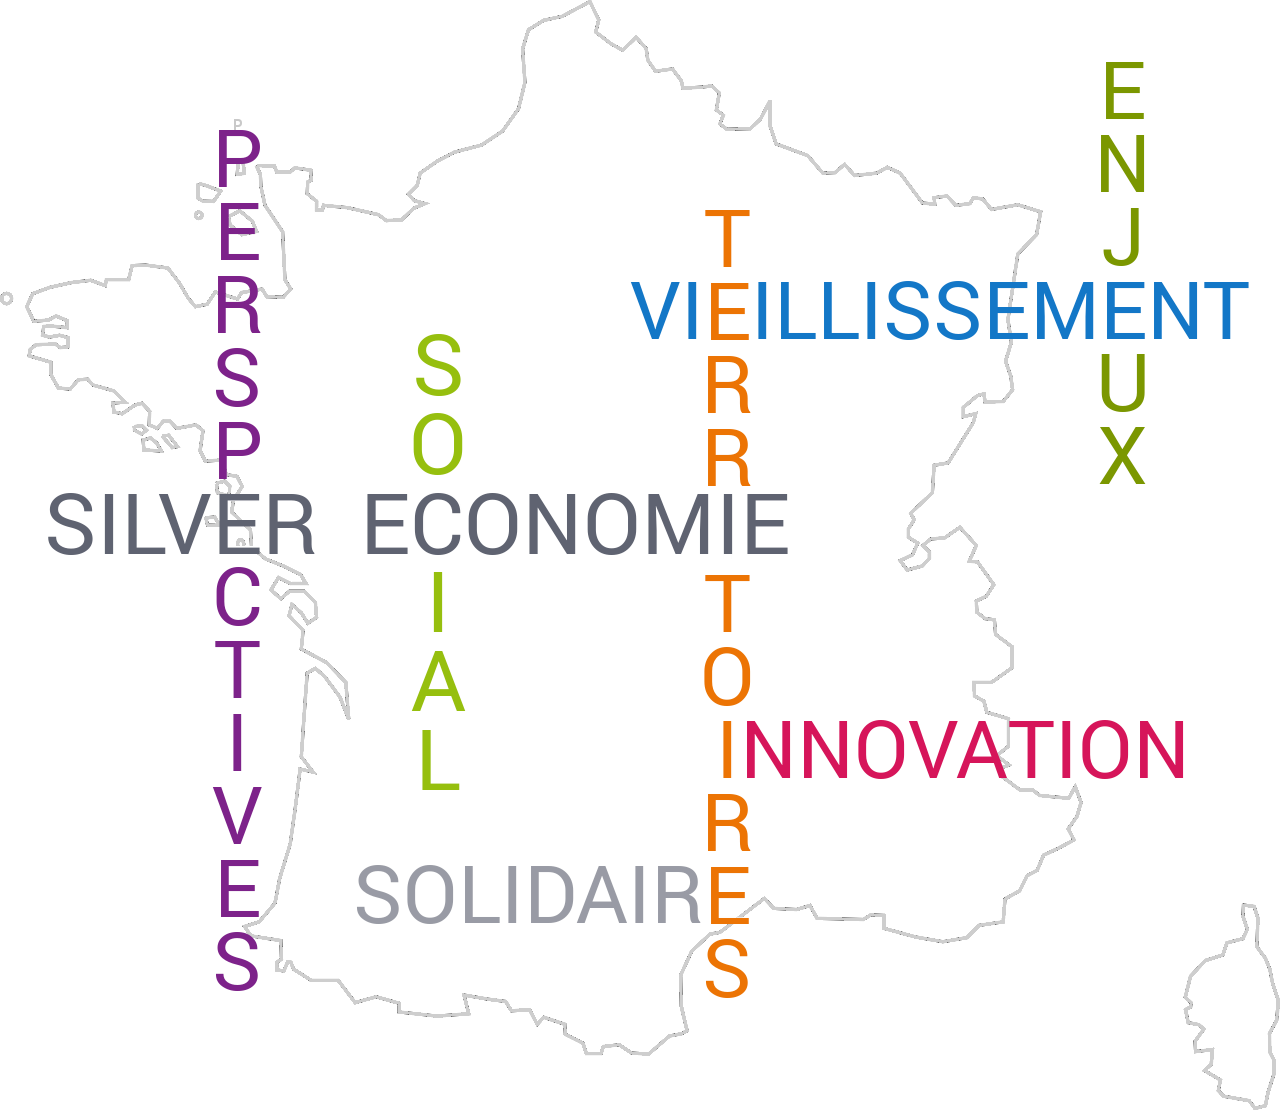 http://blog.hakisa.com/wp-content/uploads/2015/01/france_ESS_silvereco.png